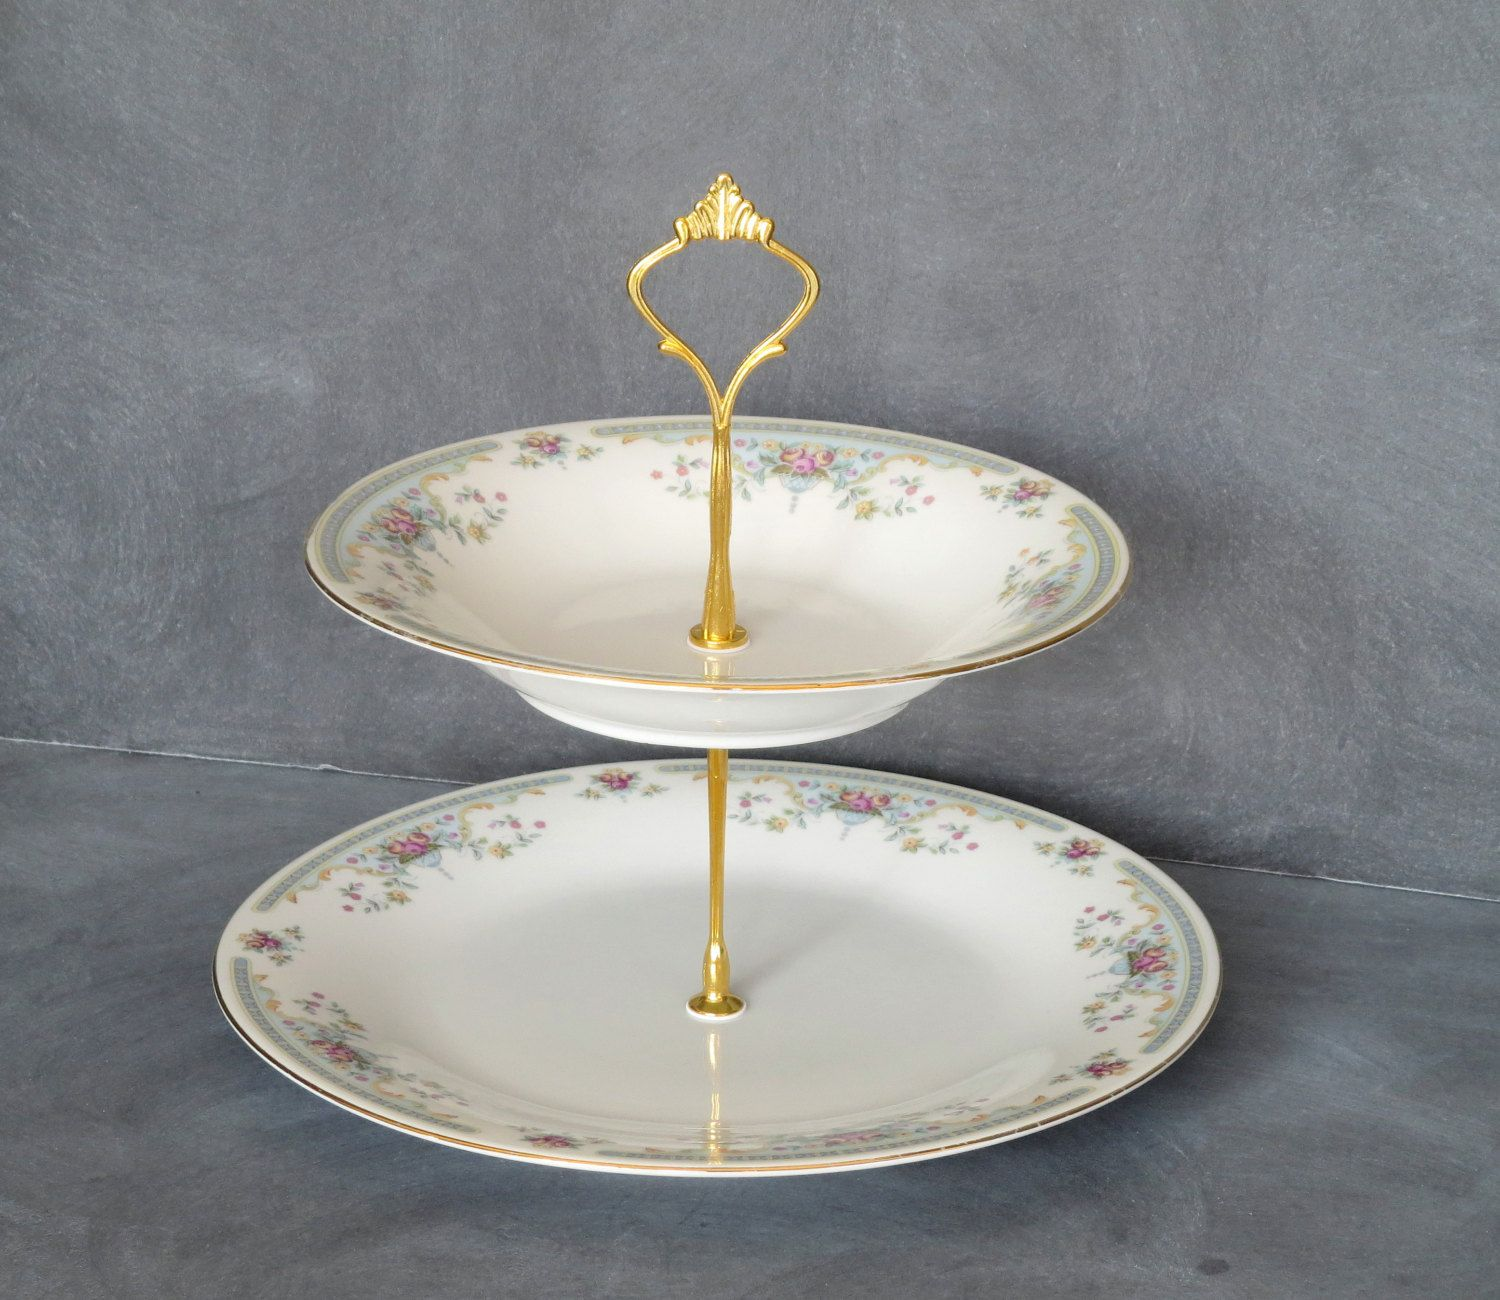 New to DancingDishAndDecor on Etsy 2 Tier Cake Plate Bridal Plate Stand Wedding Tableware | & New to DancingDishAndDecor on Etsy: 2 Tier Cake Plate Bridal Plate ...